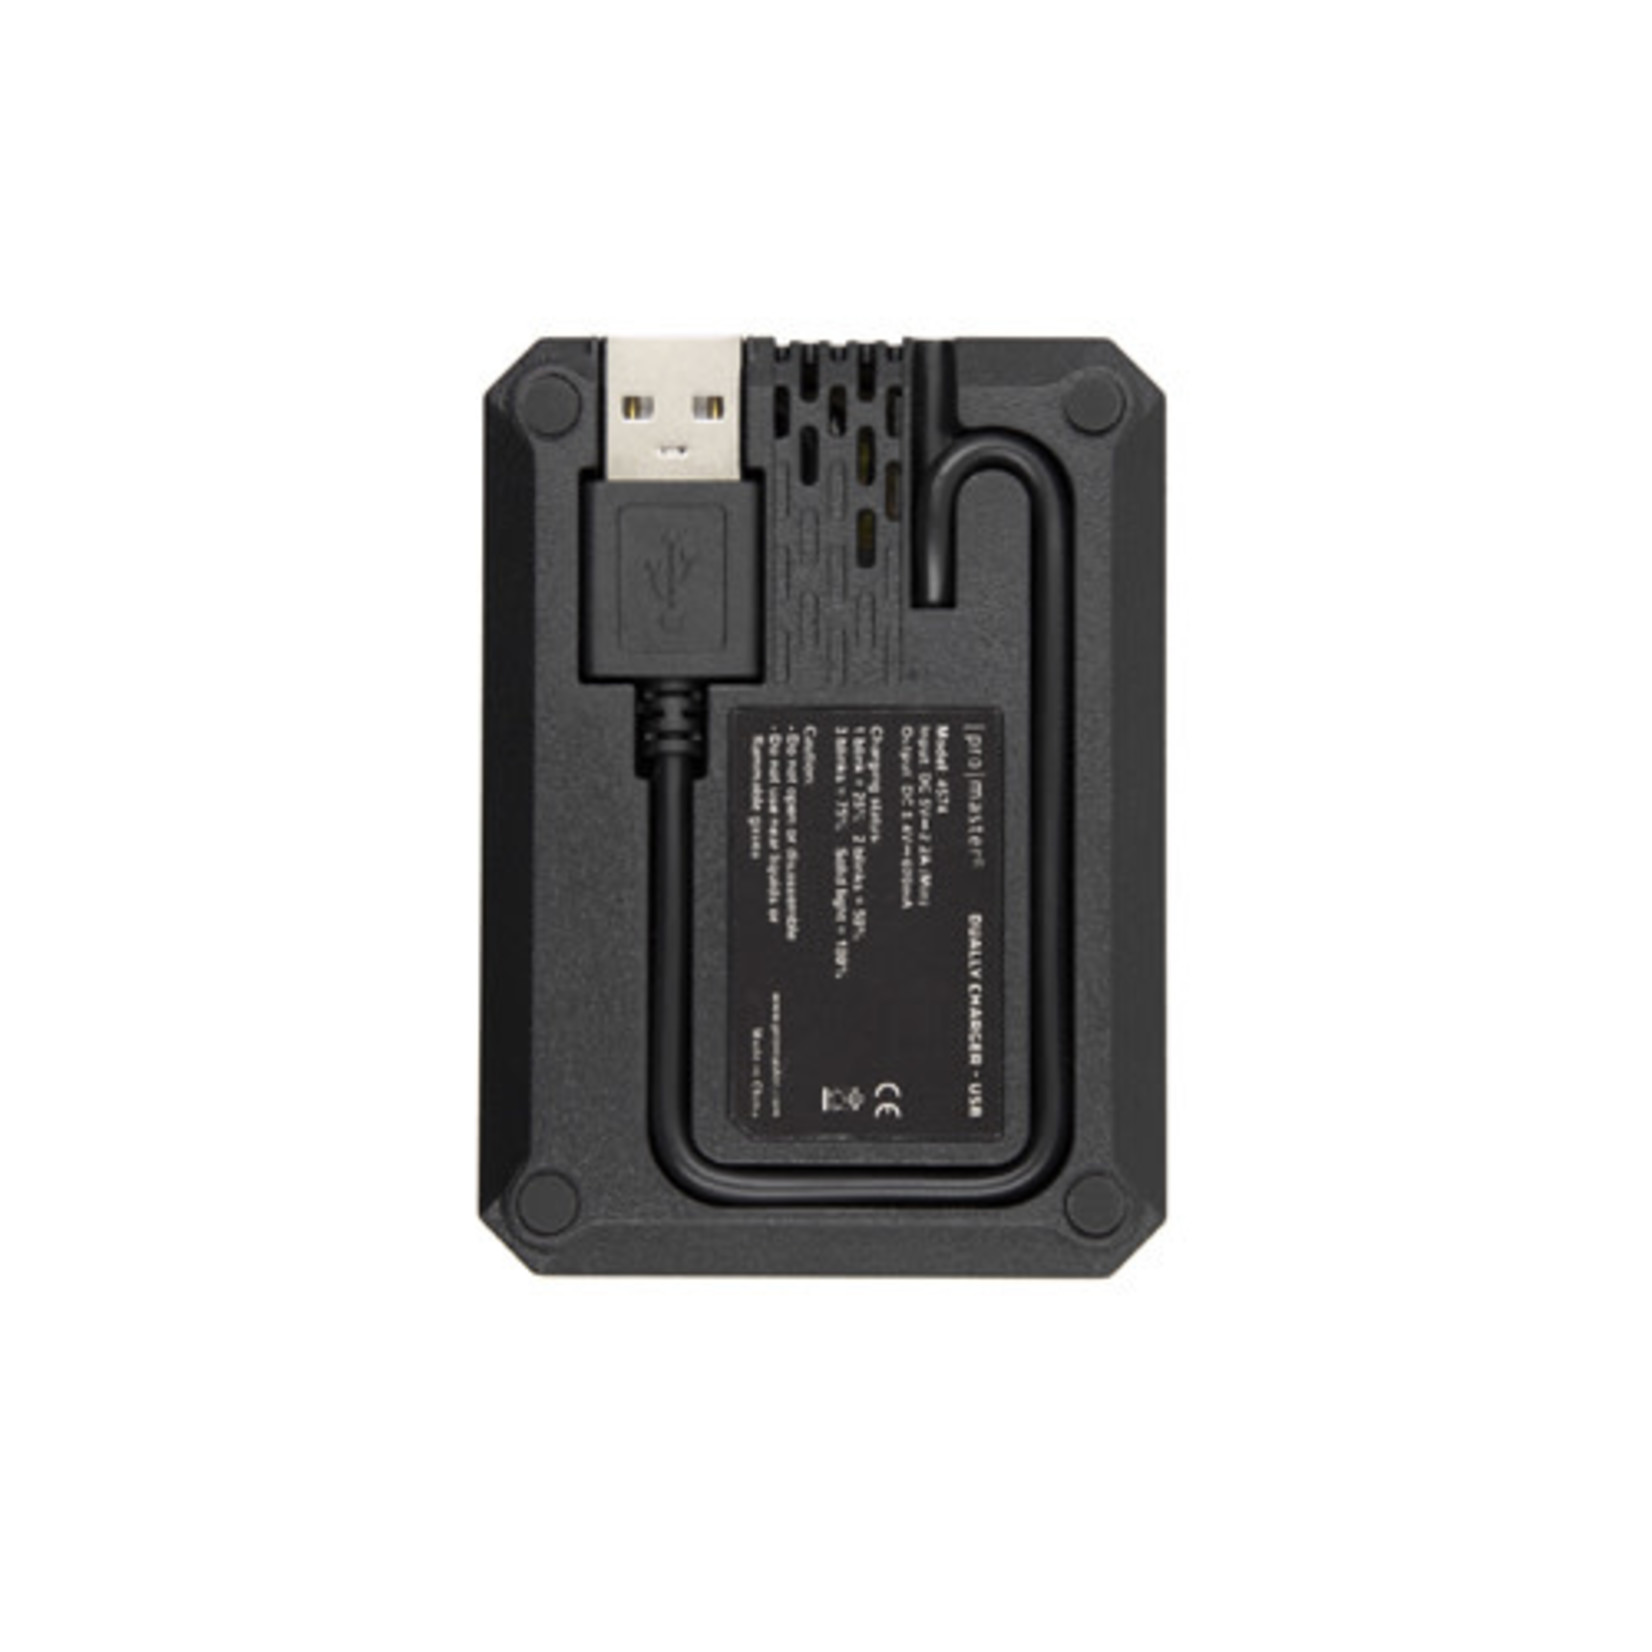 ProMaster Dually Charger - USB for Fuji NP-W126(S)